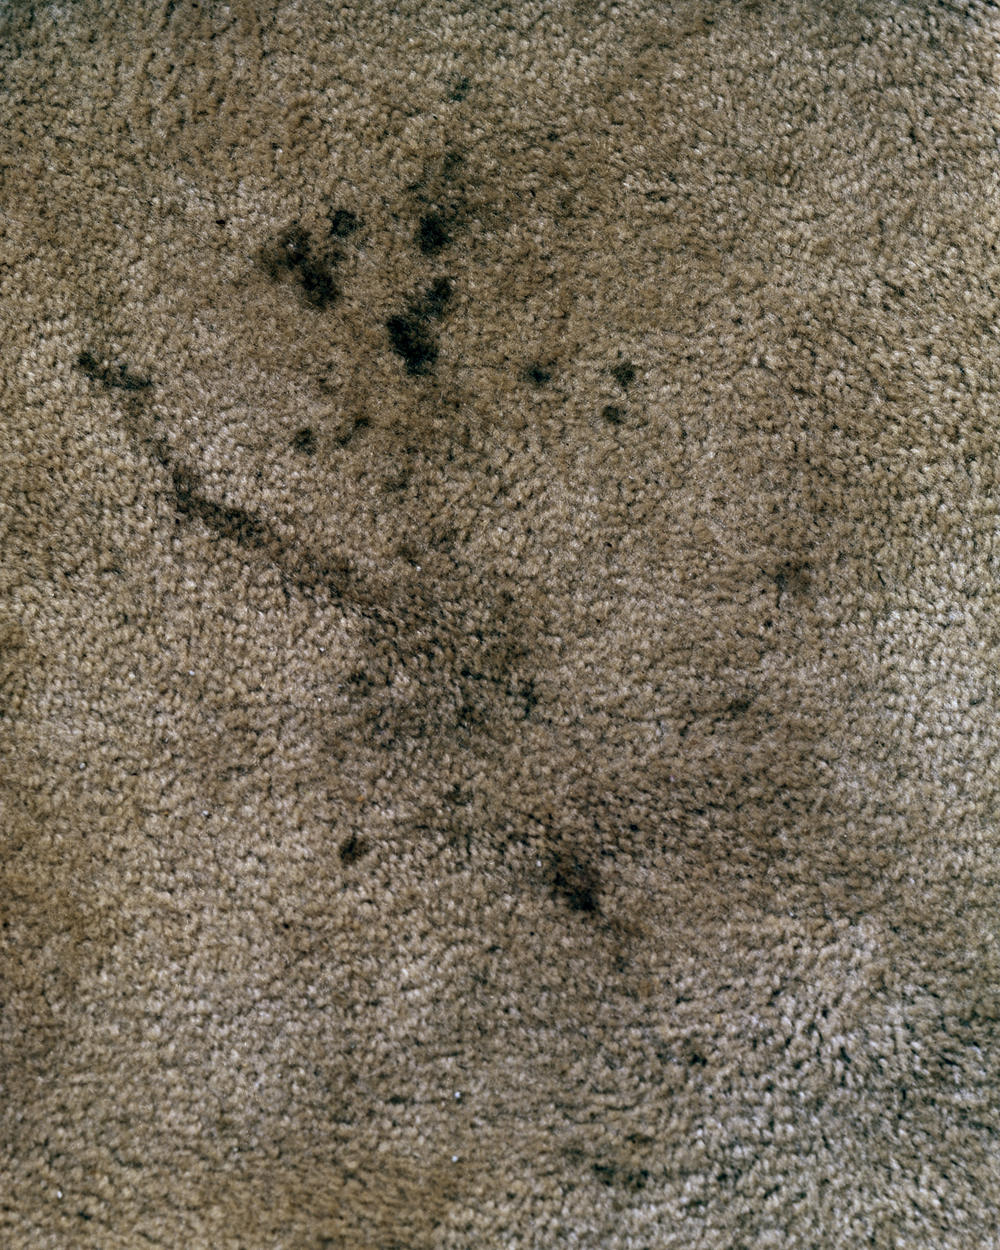 biege_carpet_black_stain.jpg